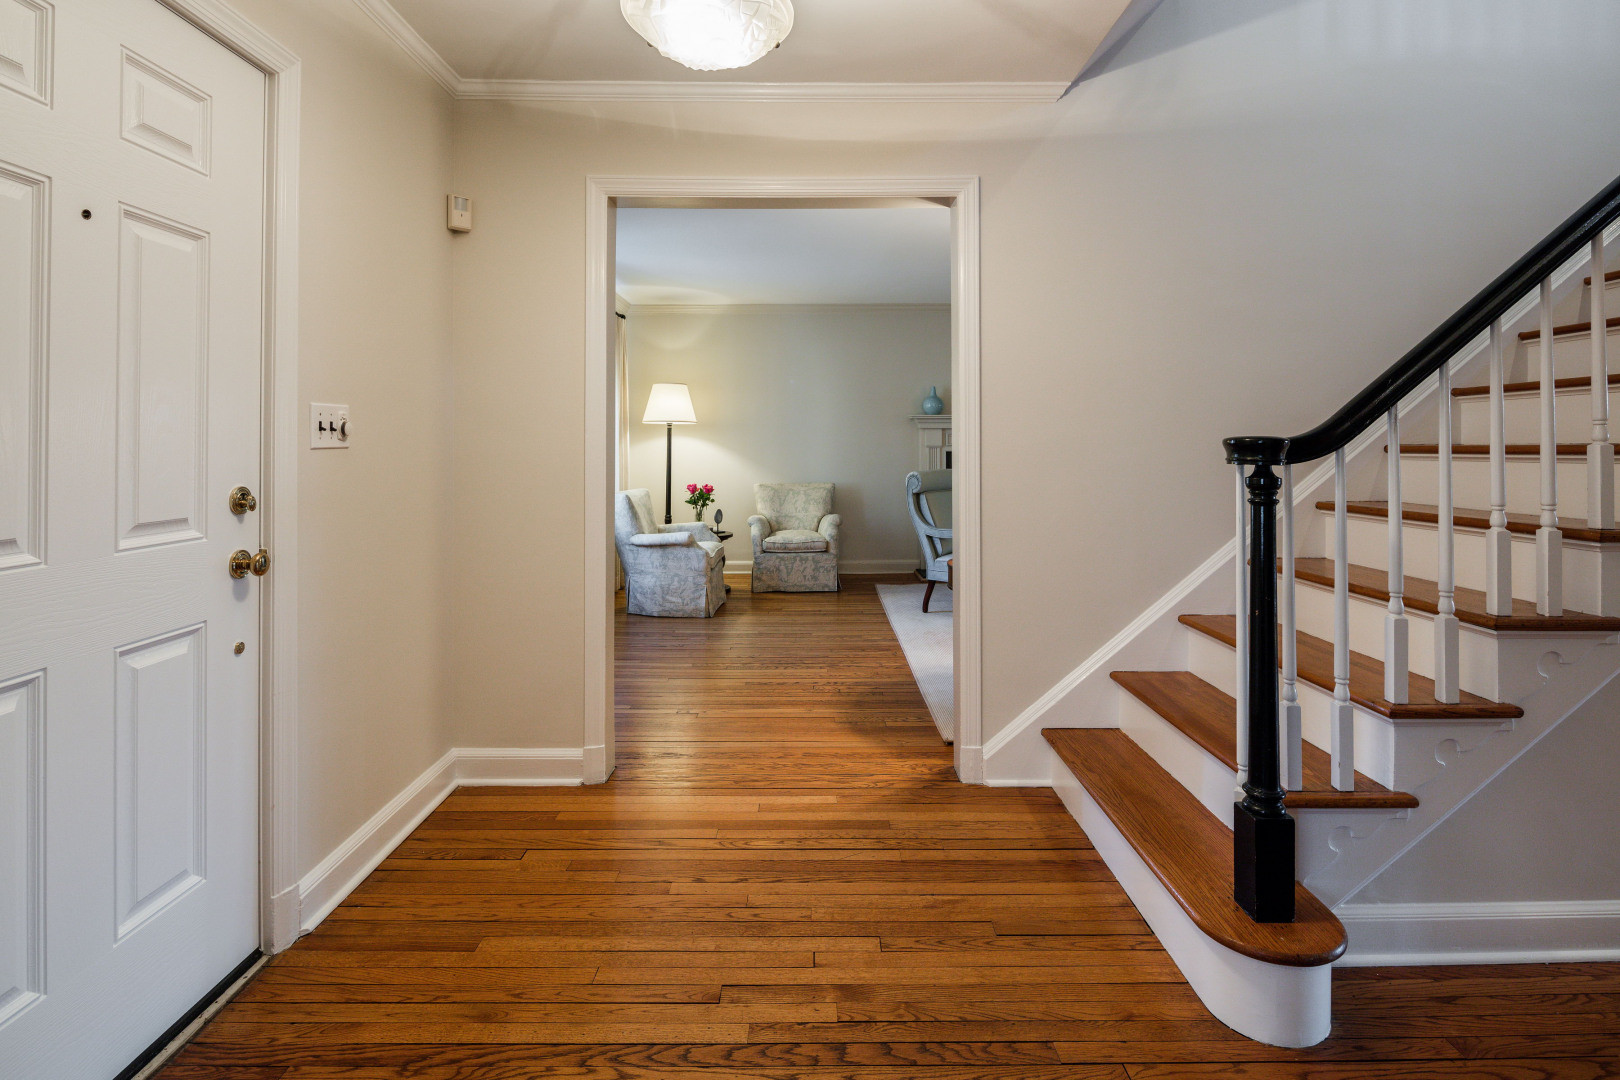 pc hardwood floors danbury ct of 68 sunny ridge road harrison ny for sale julia b fee sothebys within 68 sunny ridge road harrison ny for sale julia b fee sothebys realty